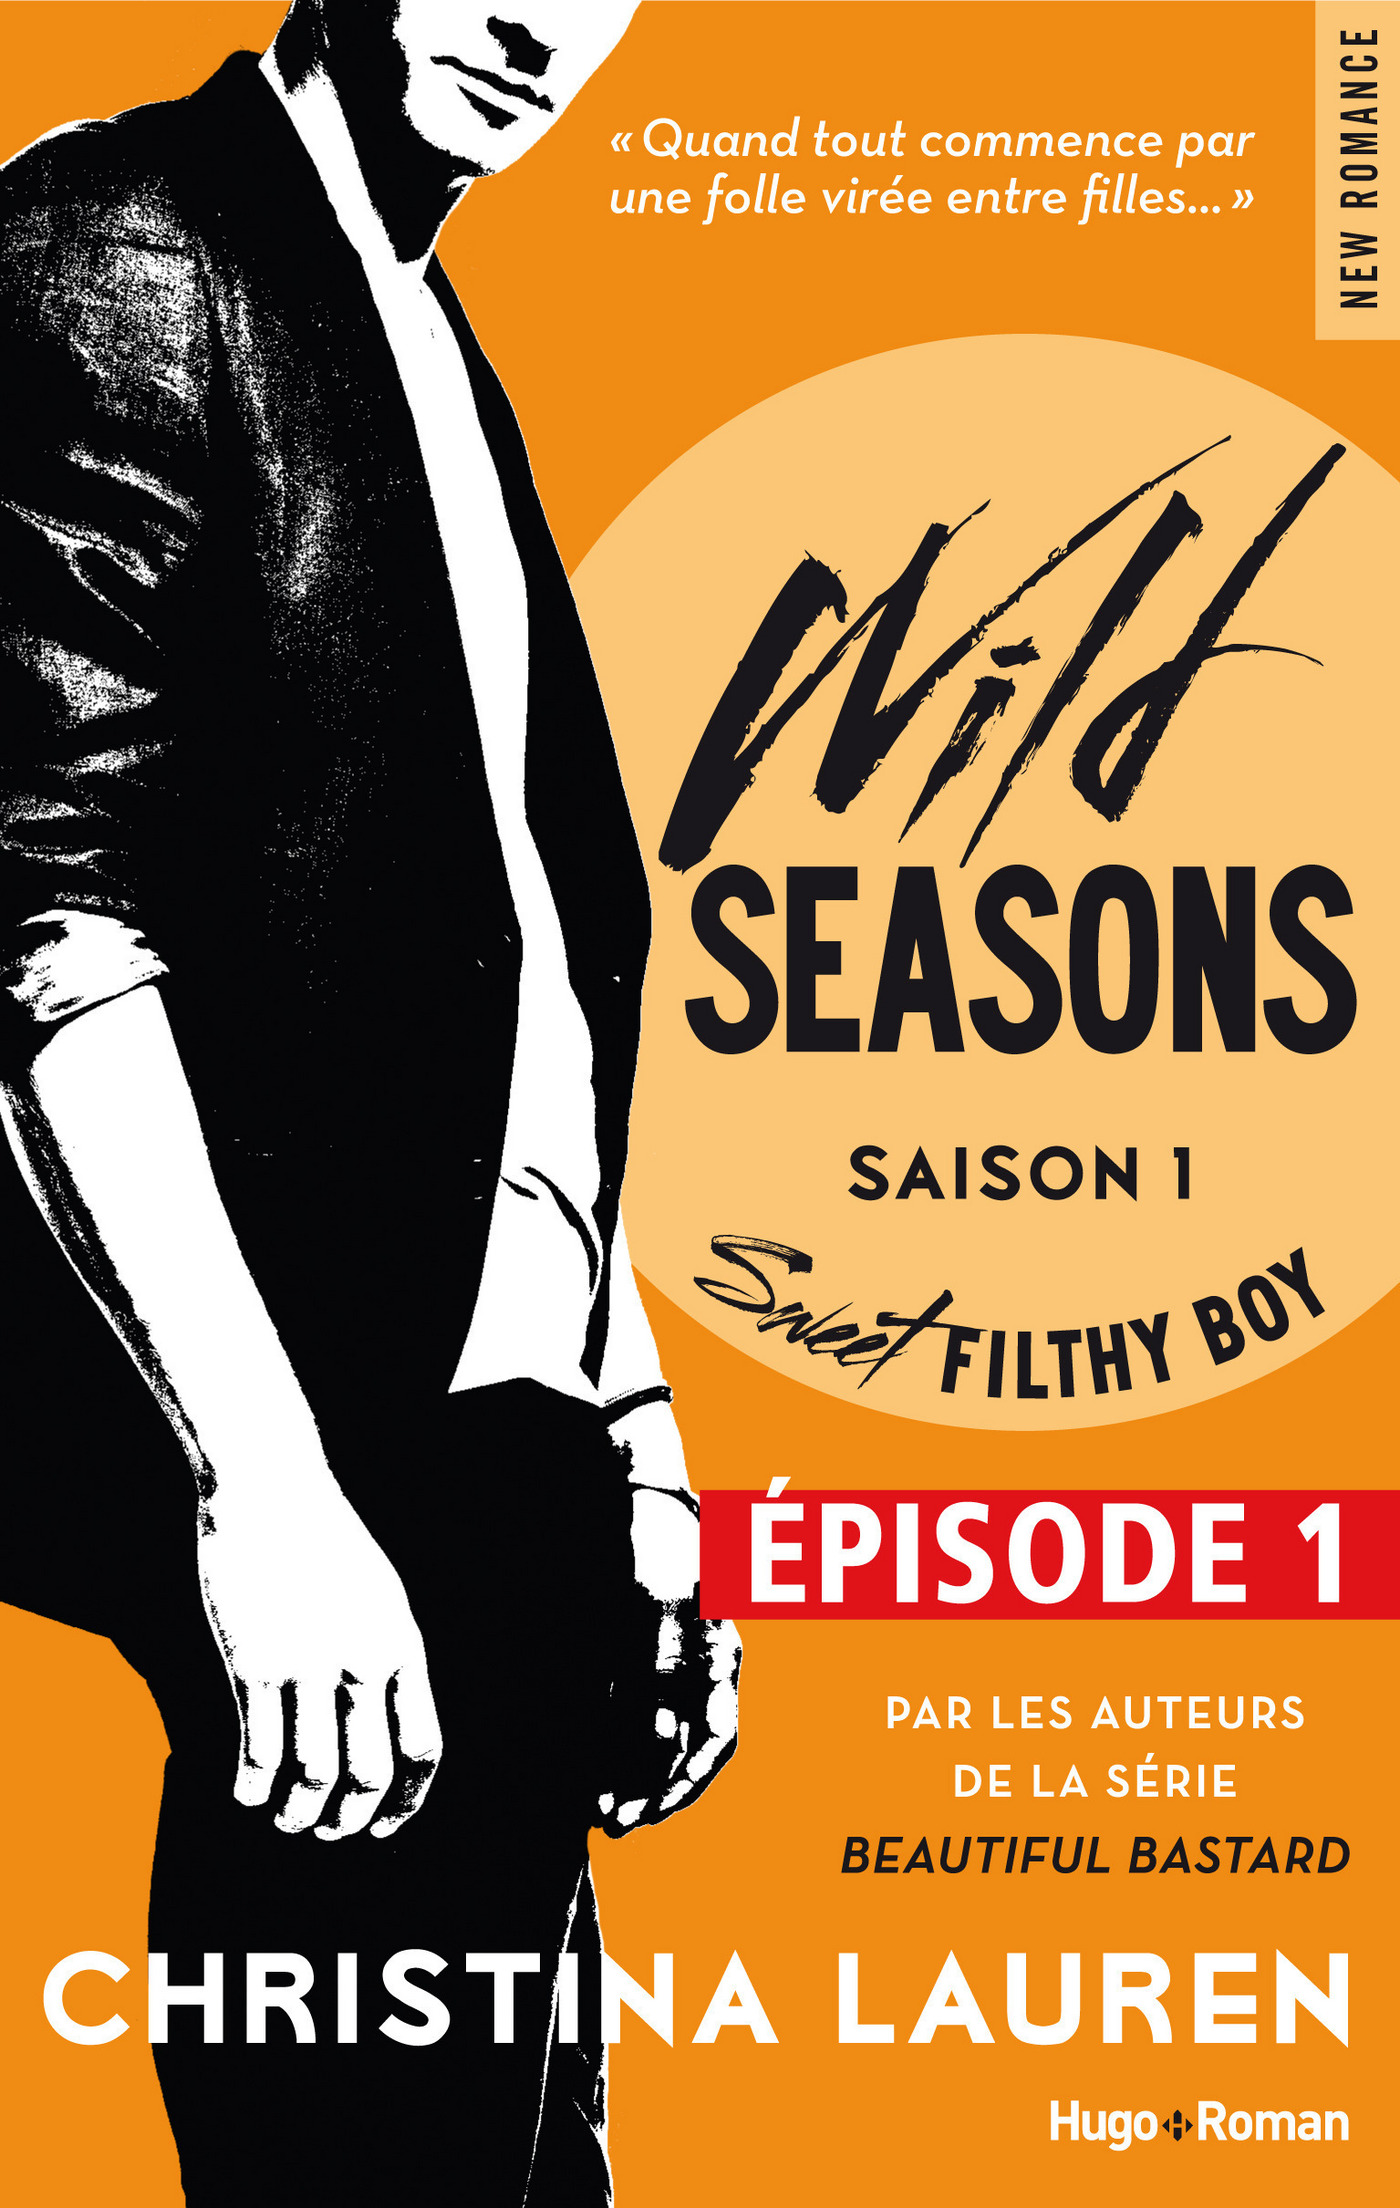 Wild Seasons Saison 1 Sweet filthy boy Episode 1 (Extrait offert)